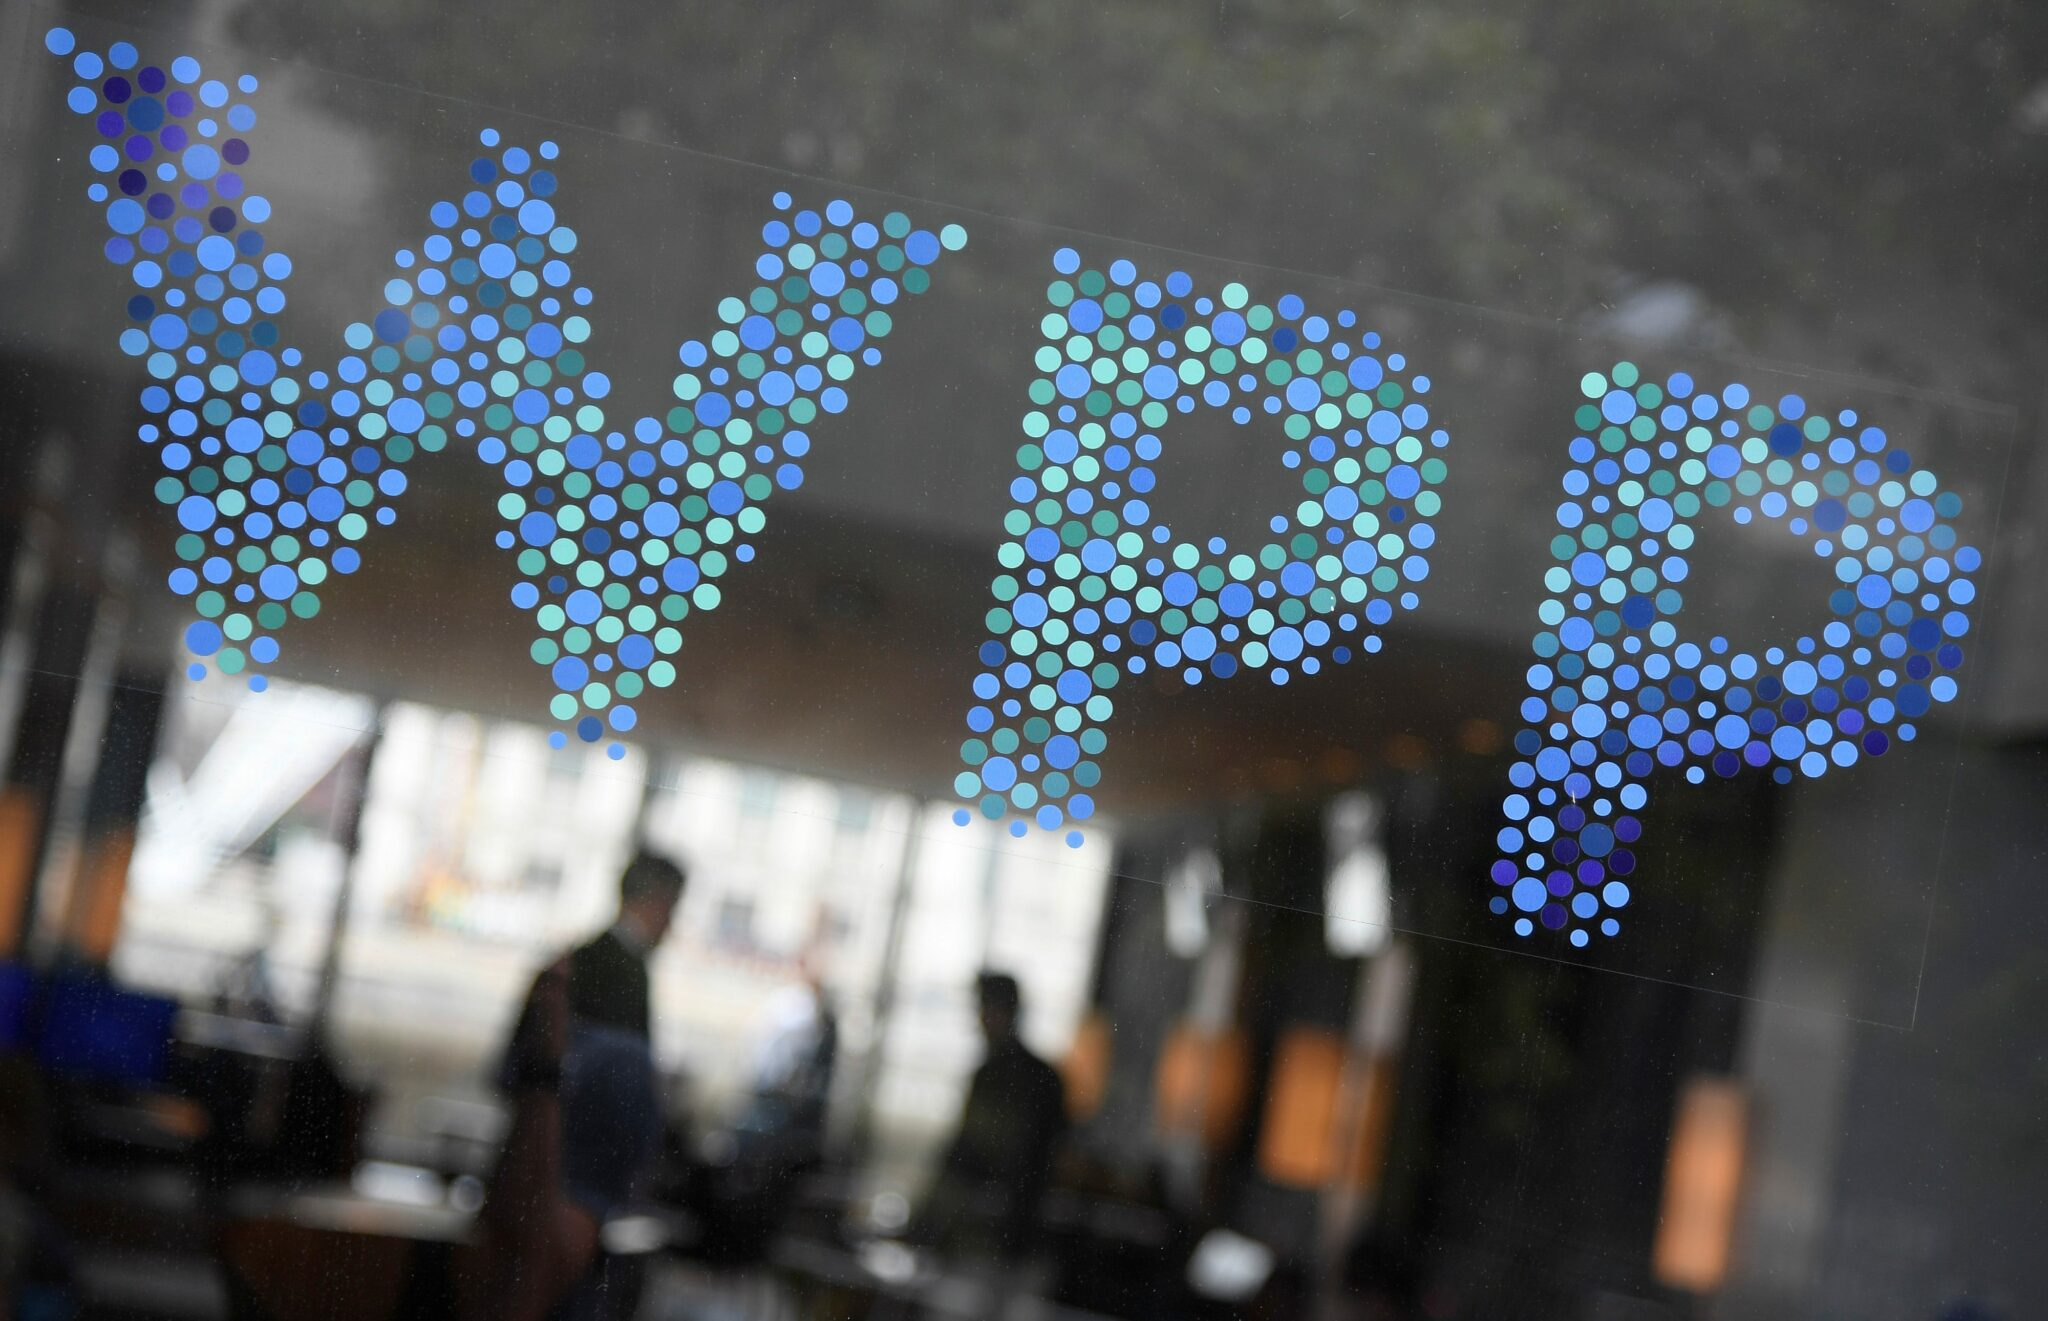 WPP is a leading advertising company